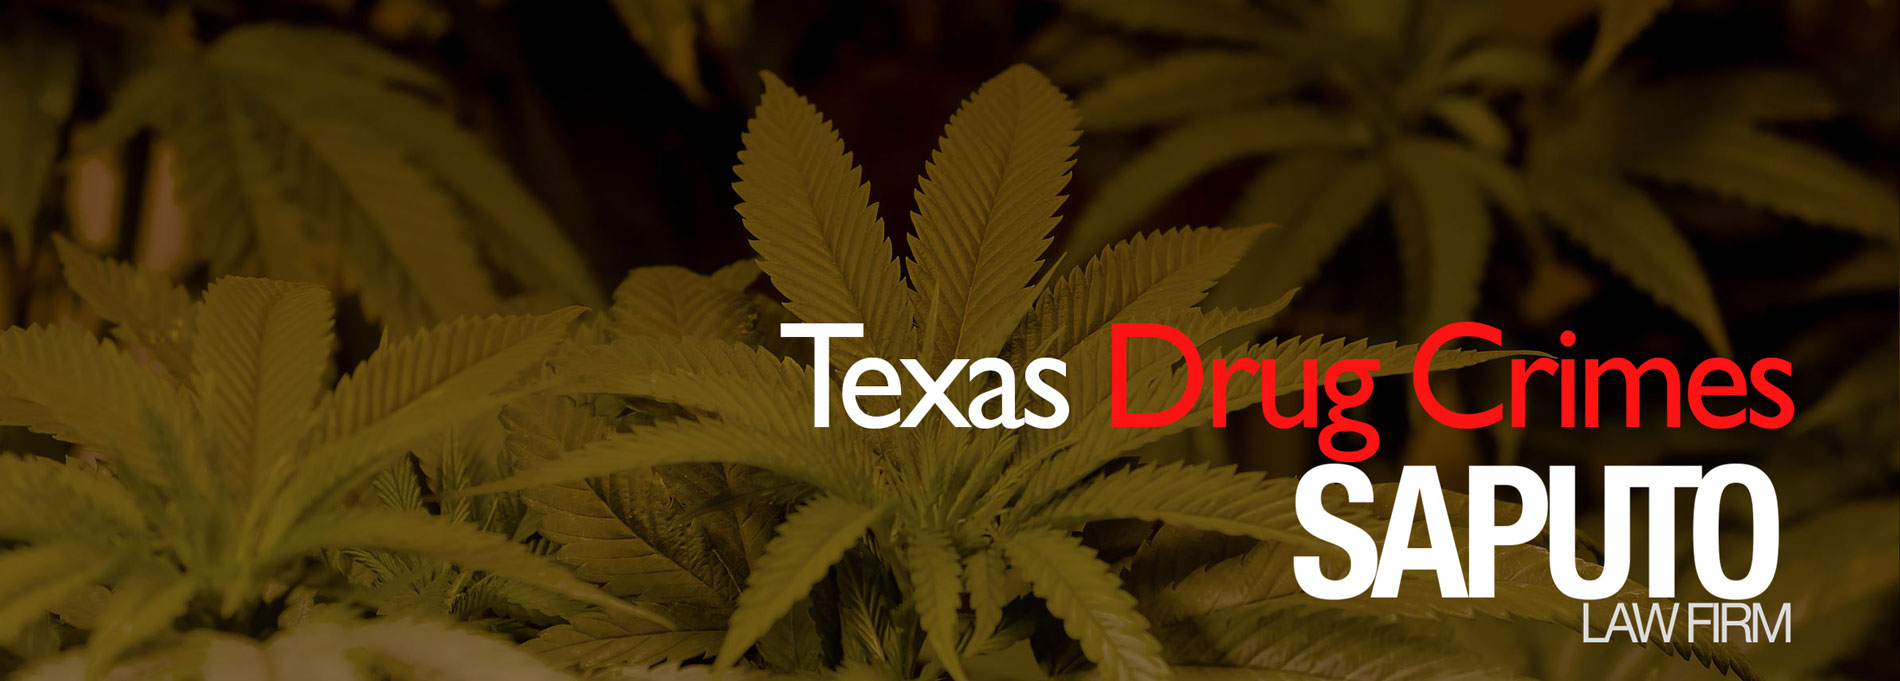 Texas Drug Crimes Graphic